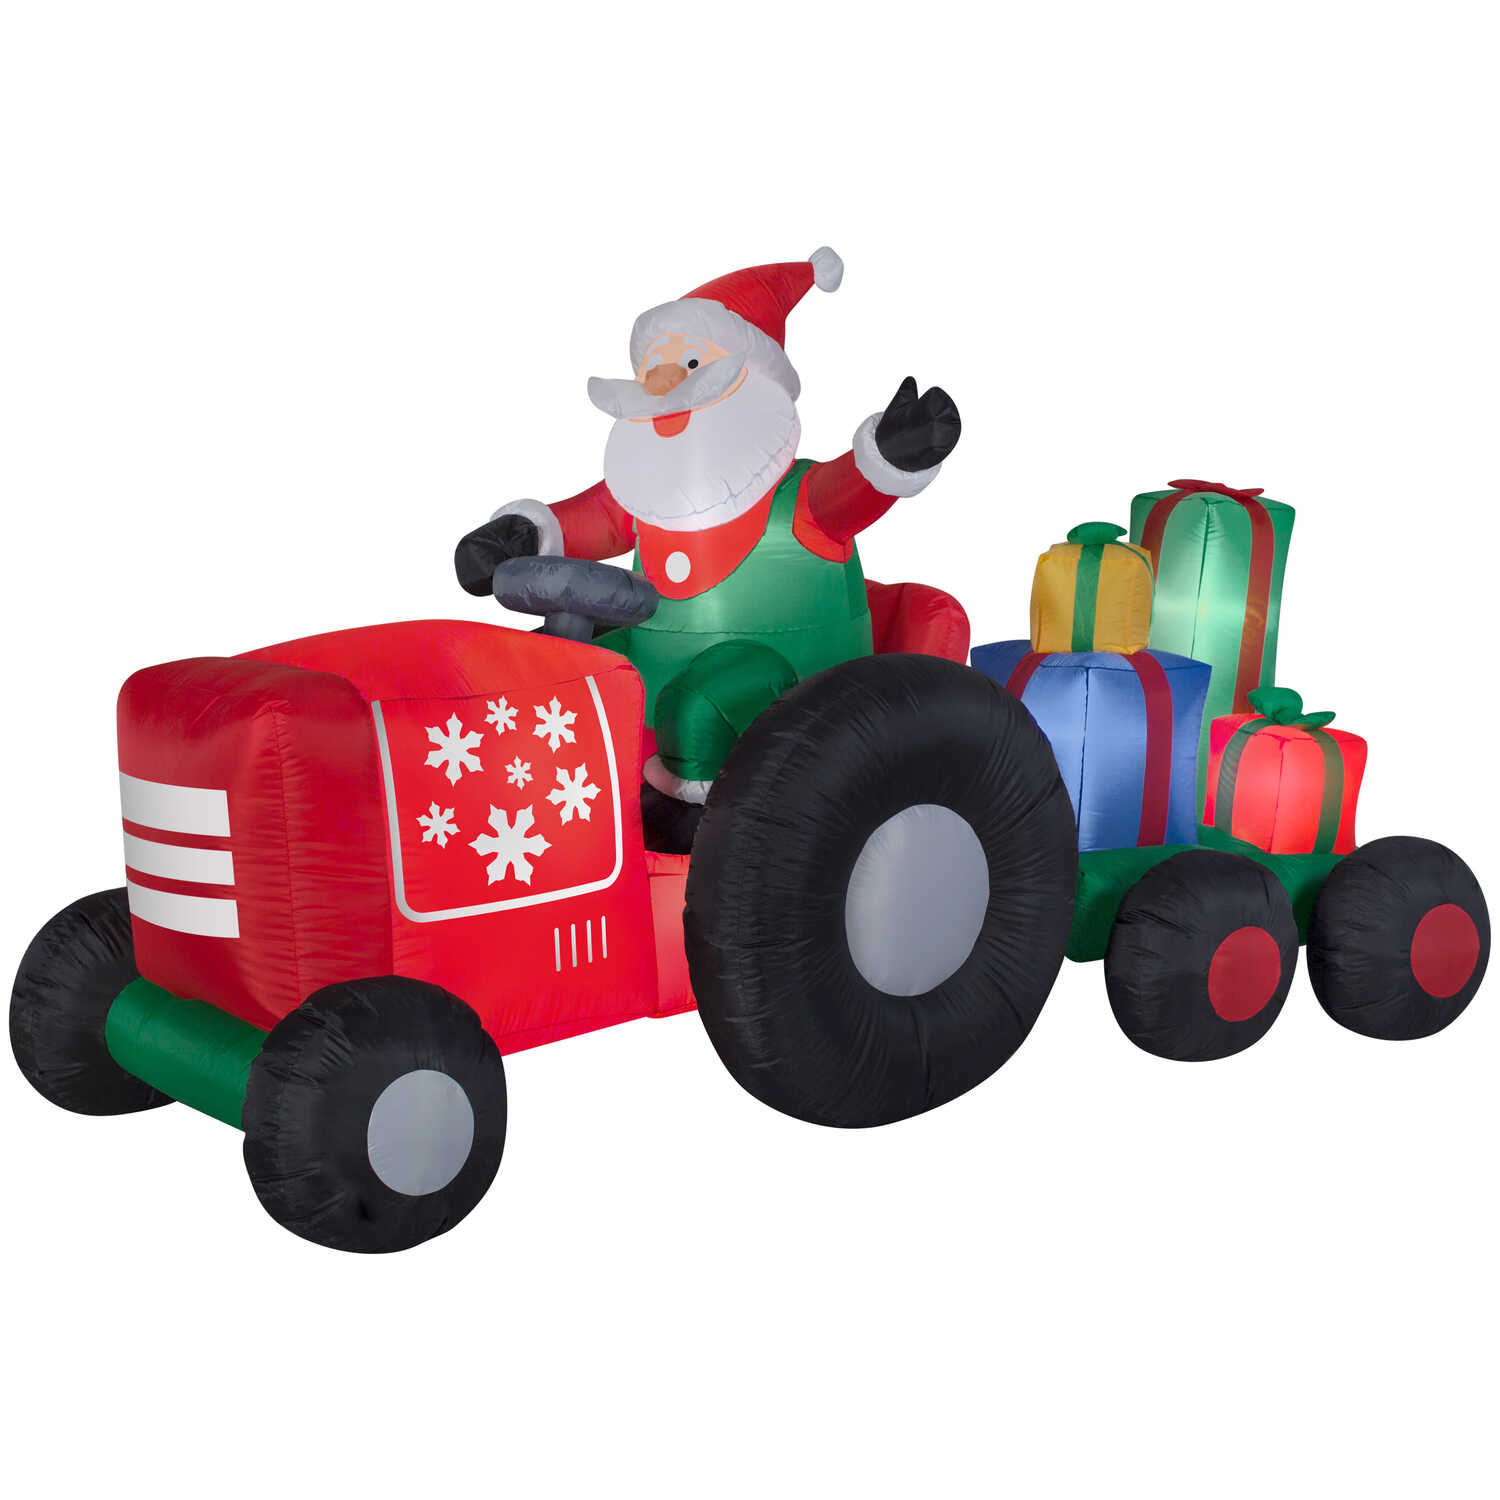 Gemmy  Tractor Riding Santa  Christmas Inflatable  Fabric  1 pk